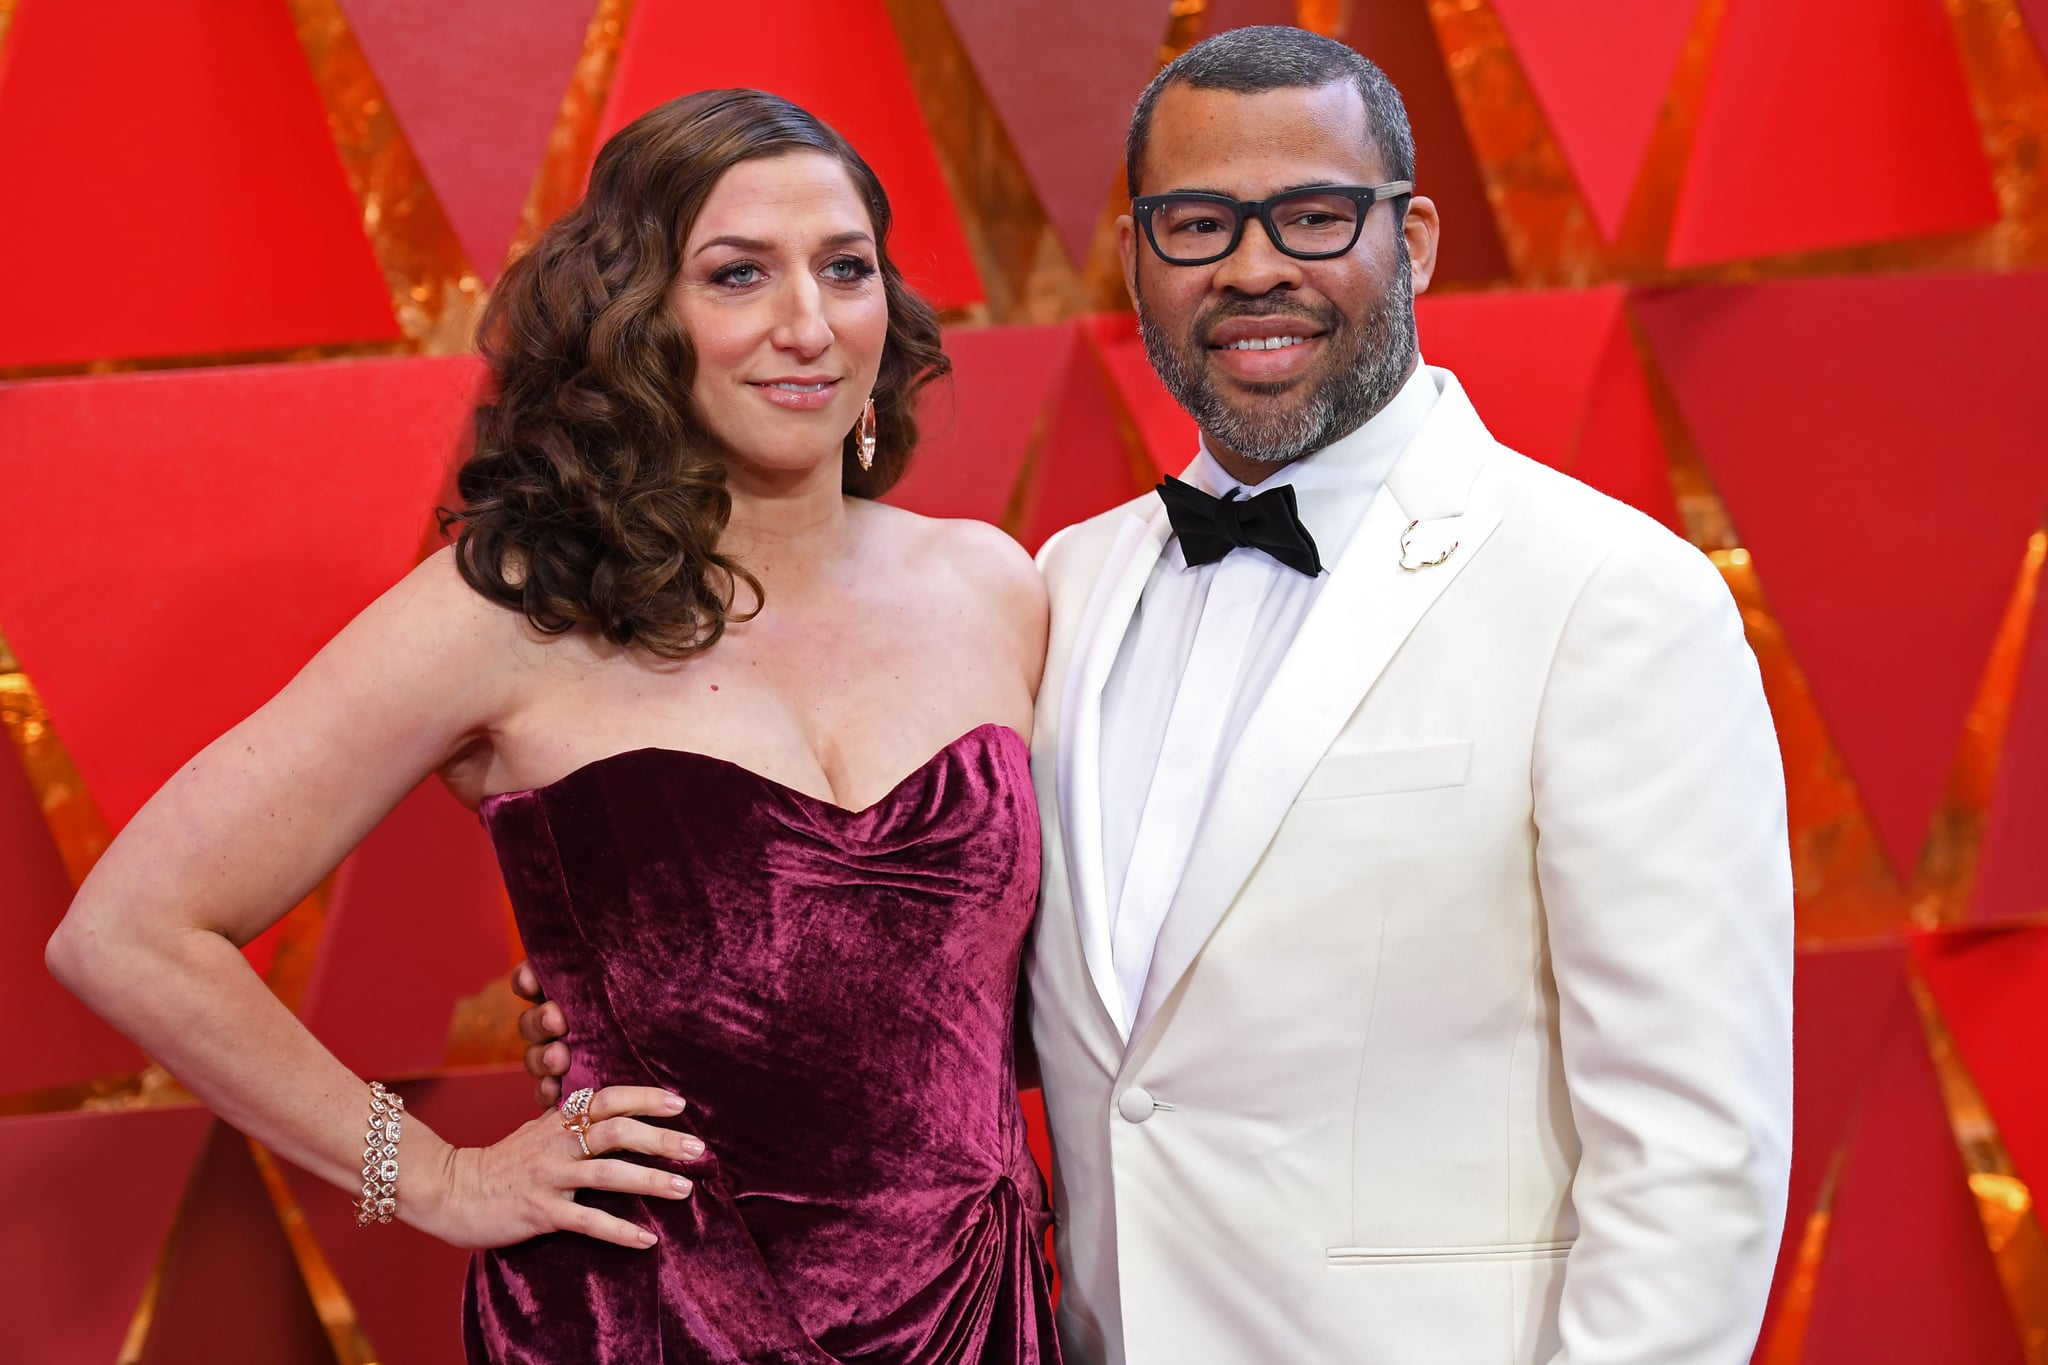 Jordan Peele Is First African American to Win Best Original Screenplay Oscar